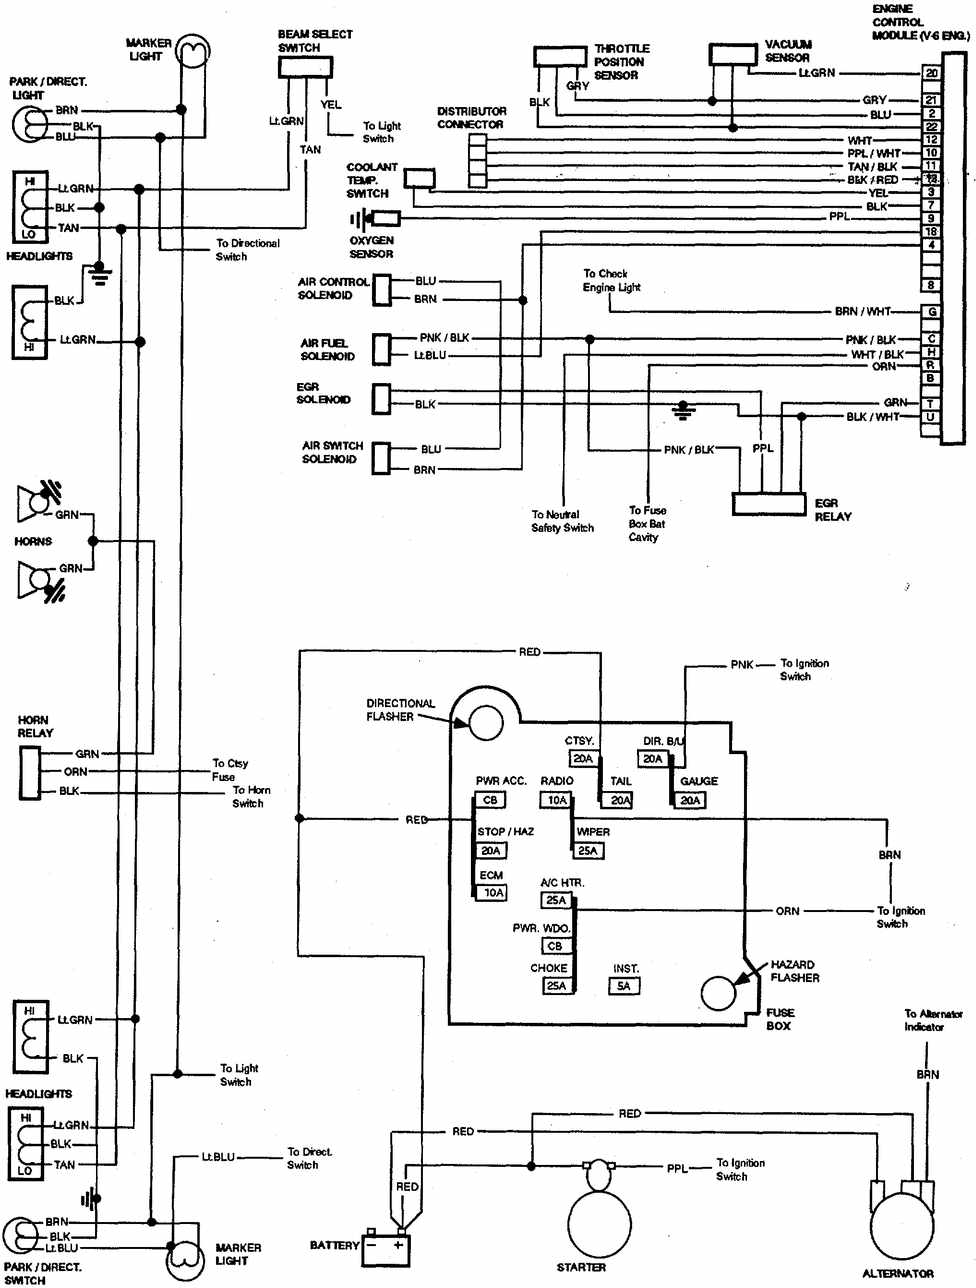 1976 Chevy Suburban Wiring Diagram List Of Schematic Circuit 06 Tundra 2001 Yukon Air Conditioner Auto Electrical Rh Mit Edu Uk Hardtobelieve Me